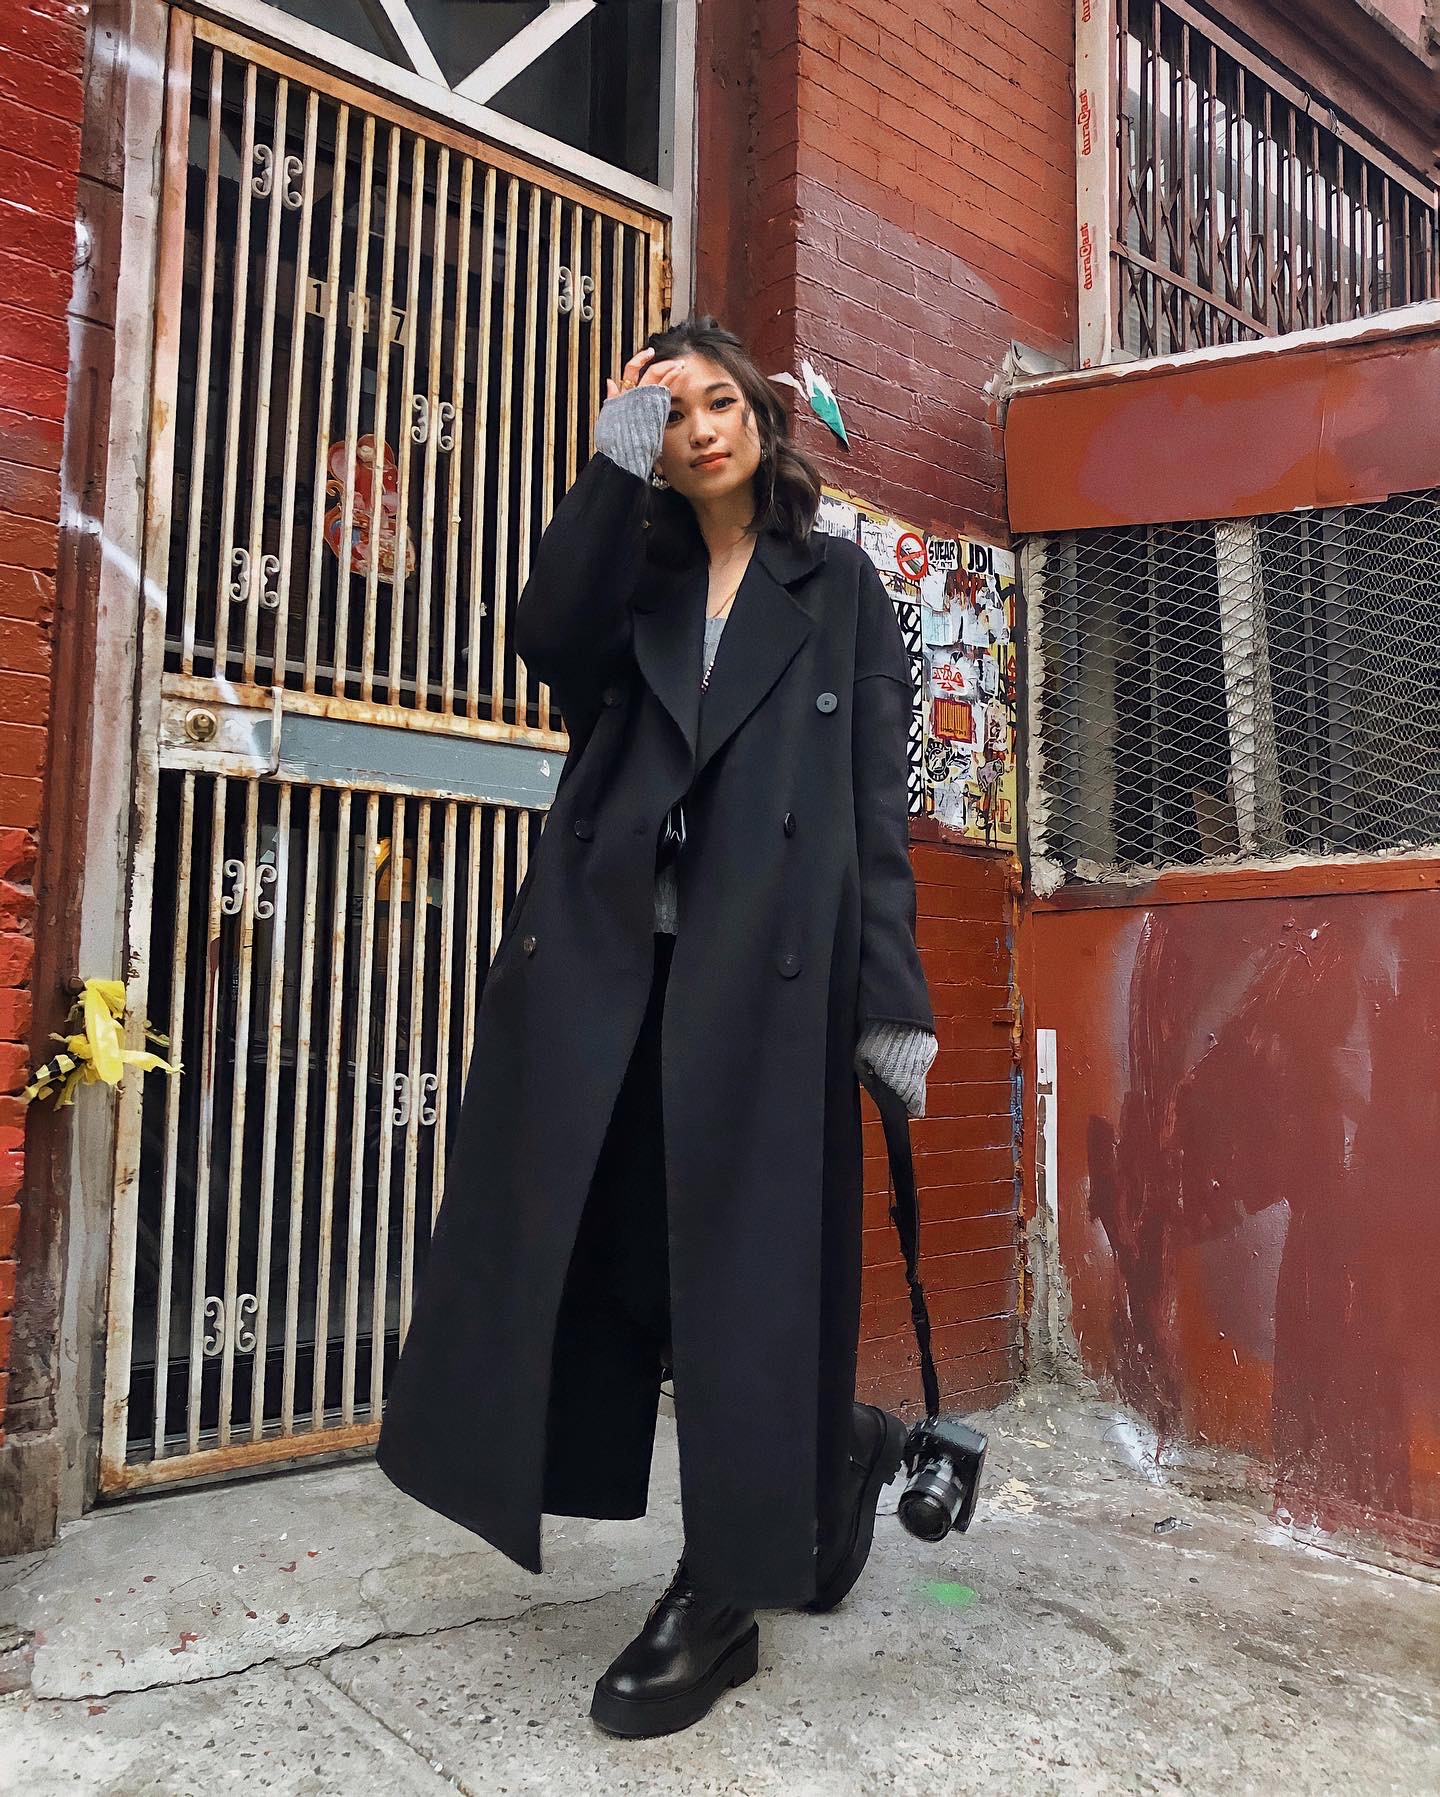 New York uniform, black outfit ideas for winter in New York, maxi coat, New York street style, winter coat layering, winter style - FOREVERVANNY.com